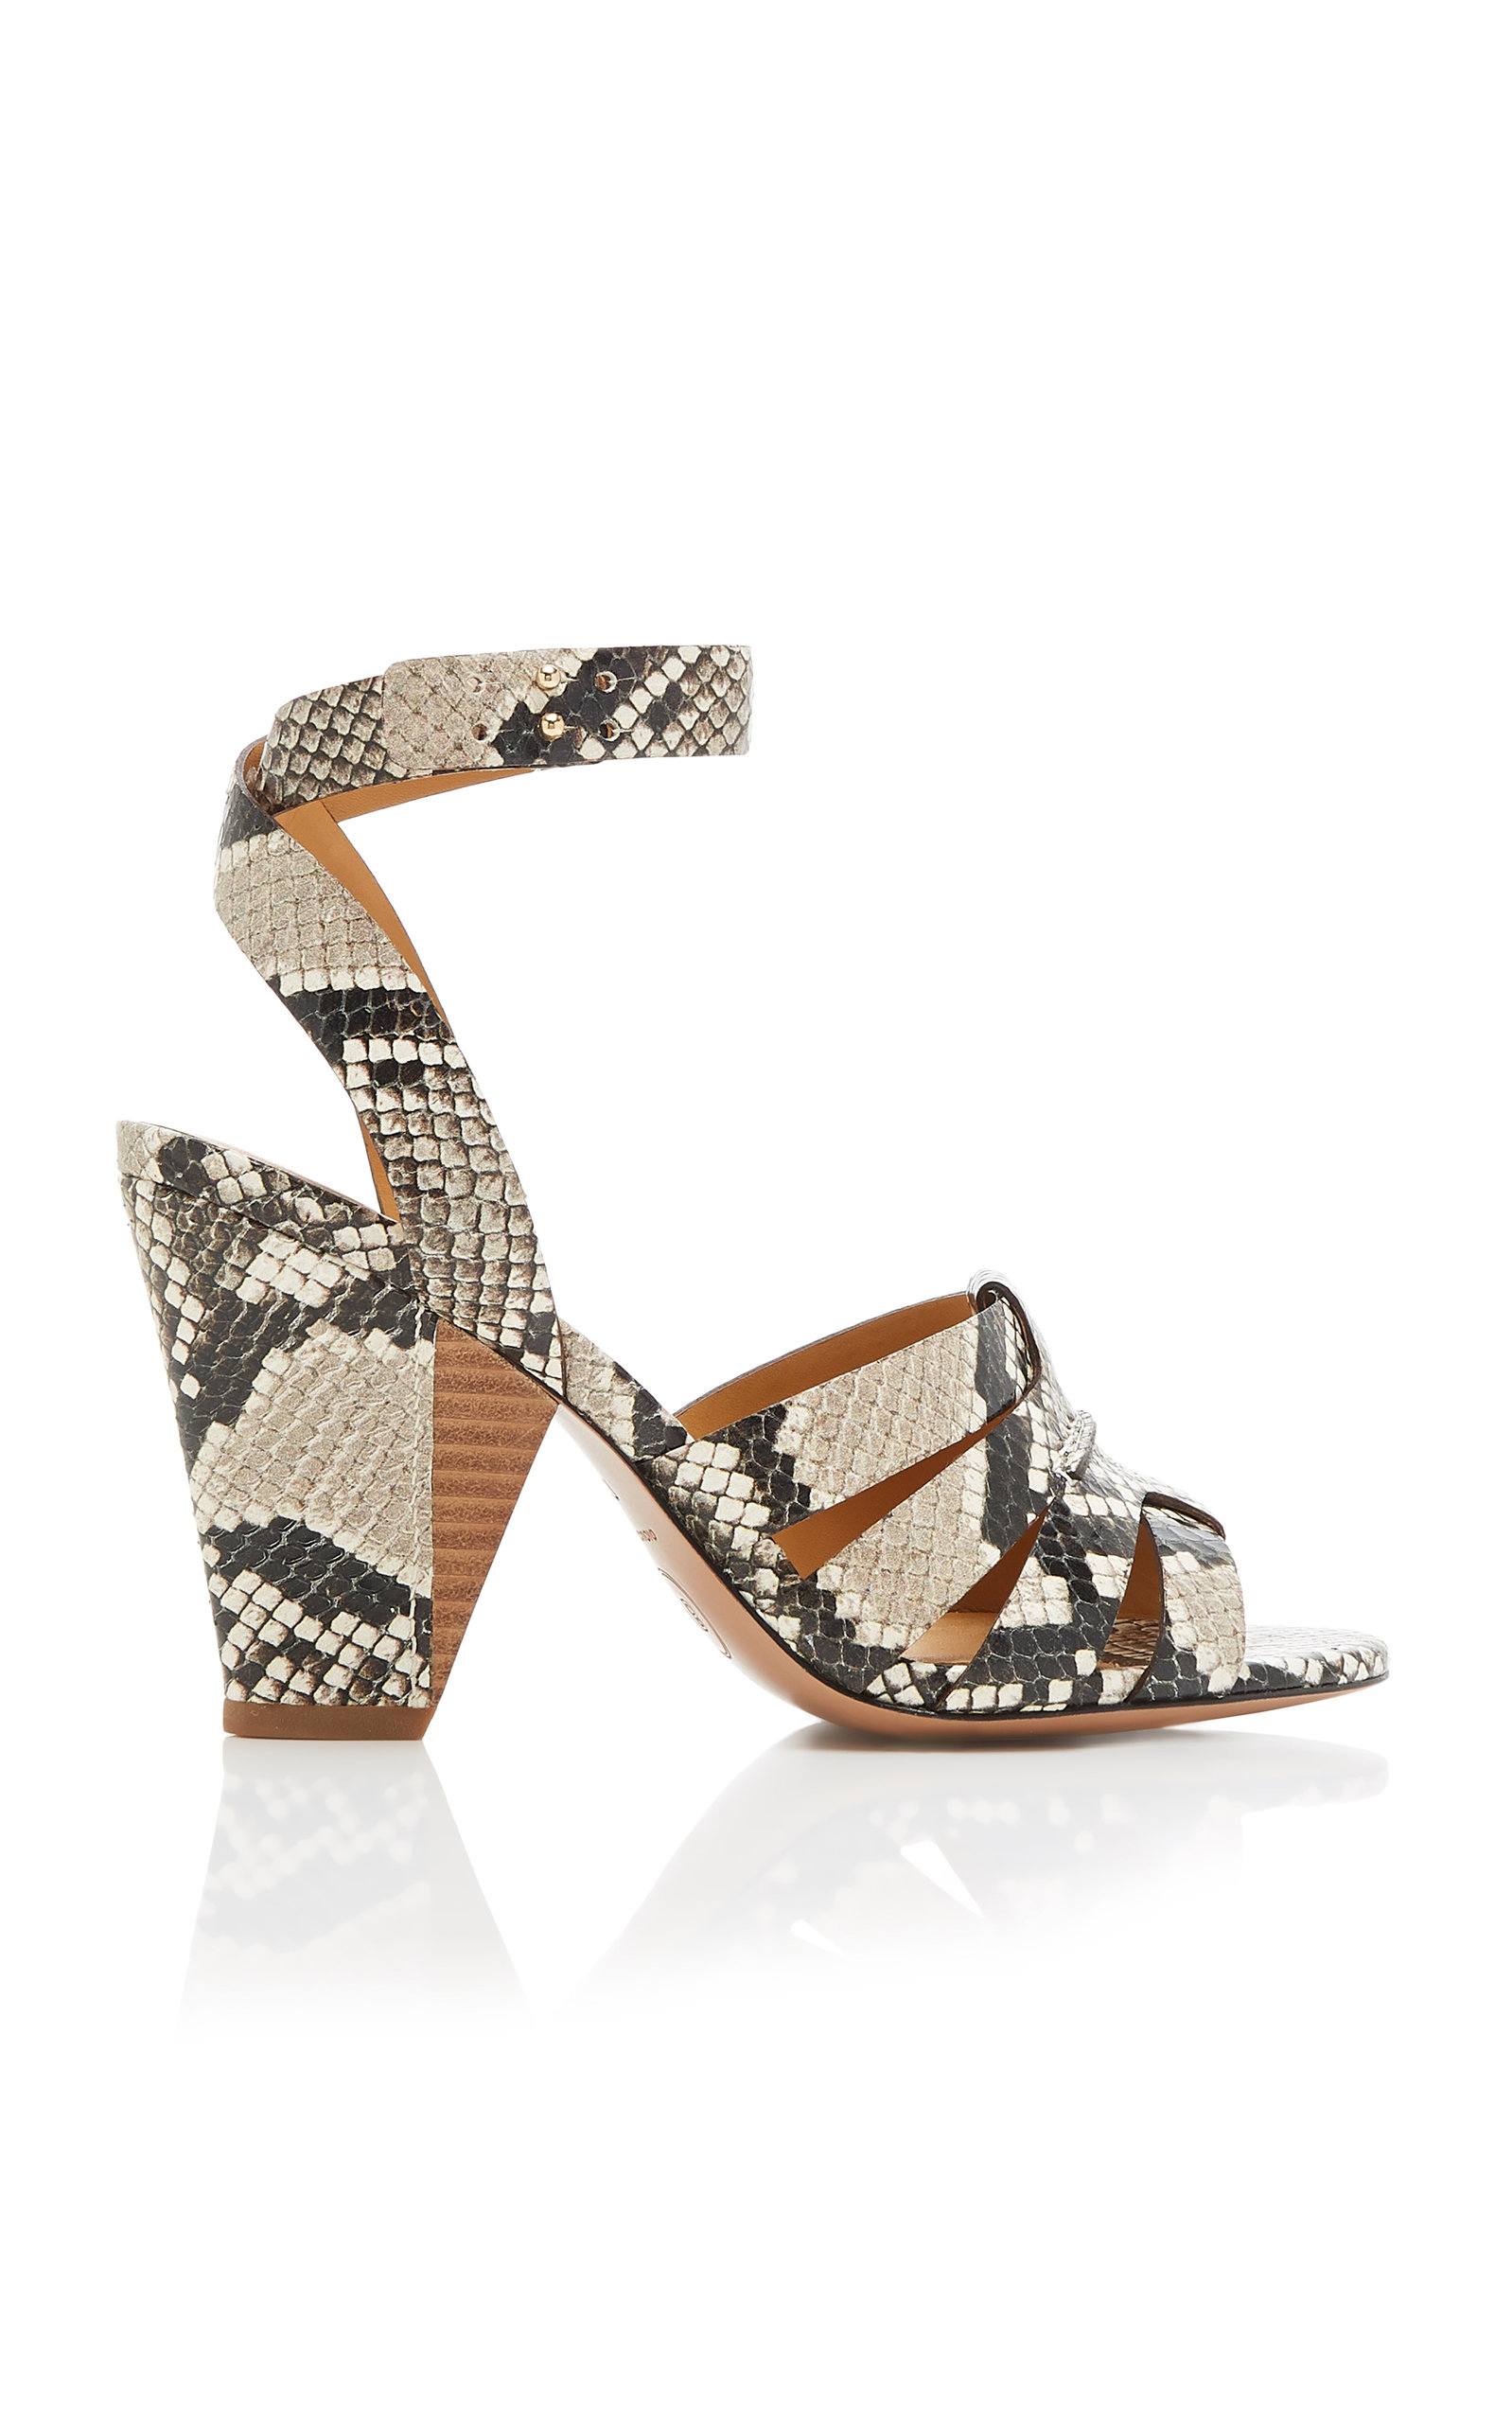 a8863ea9e Veronica Beard Charley Snake-Effect Leather Sandals In Neutral ...